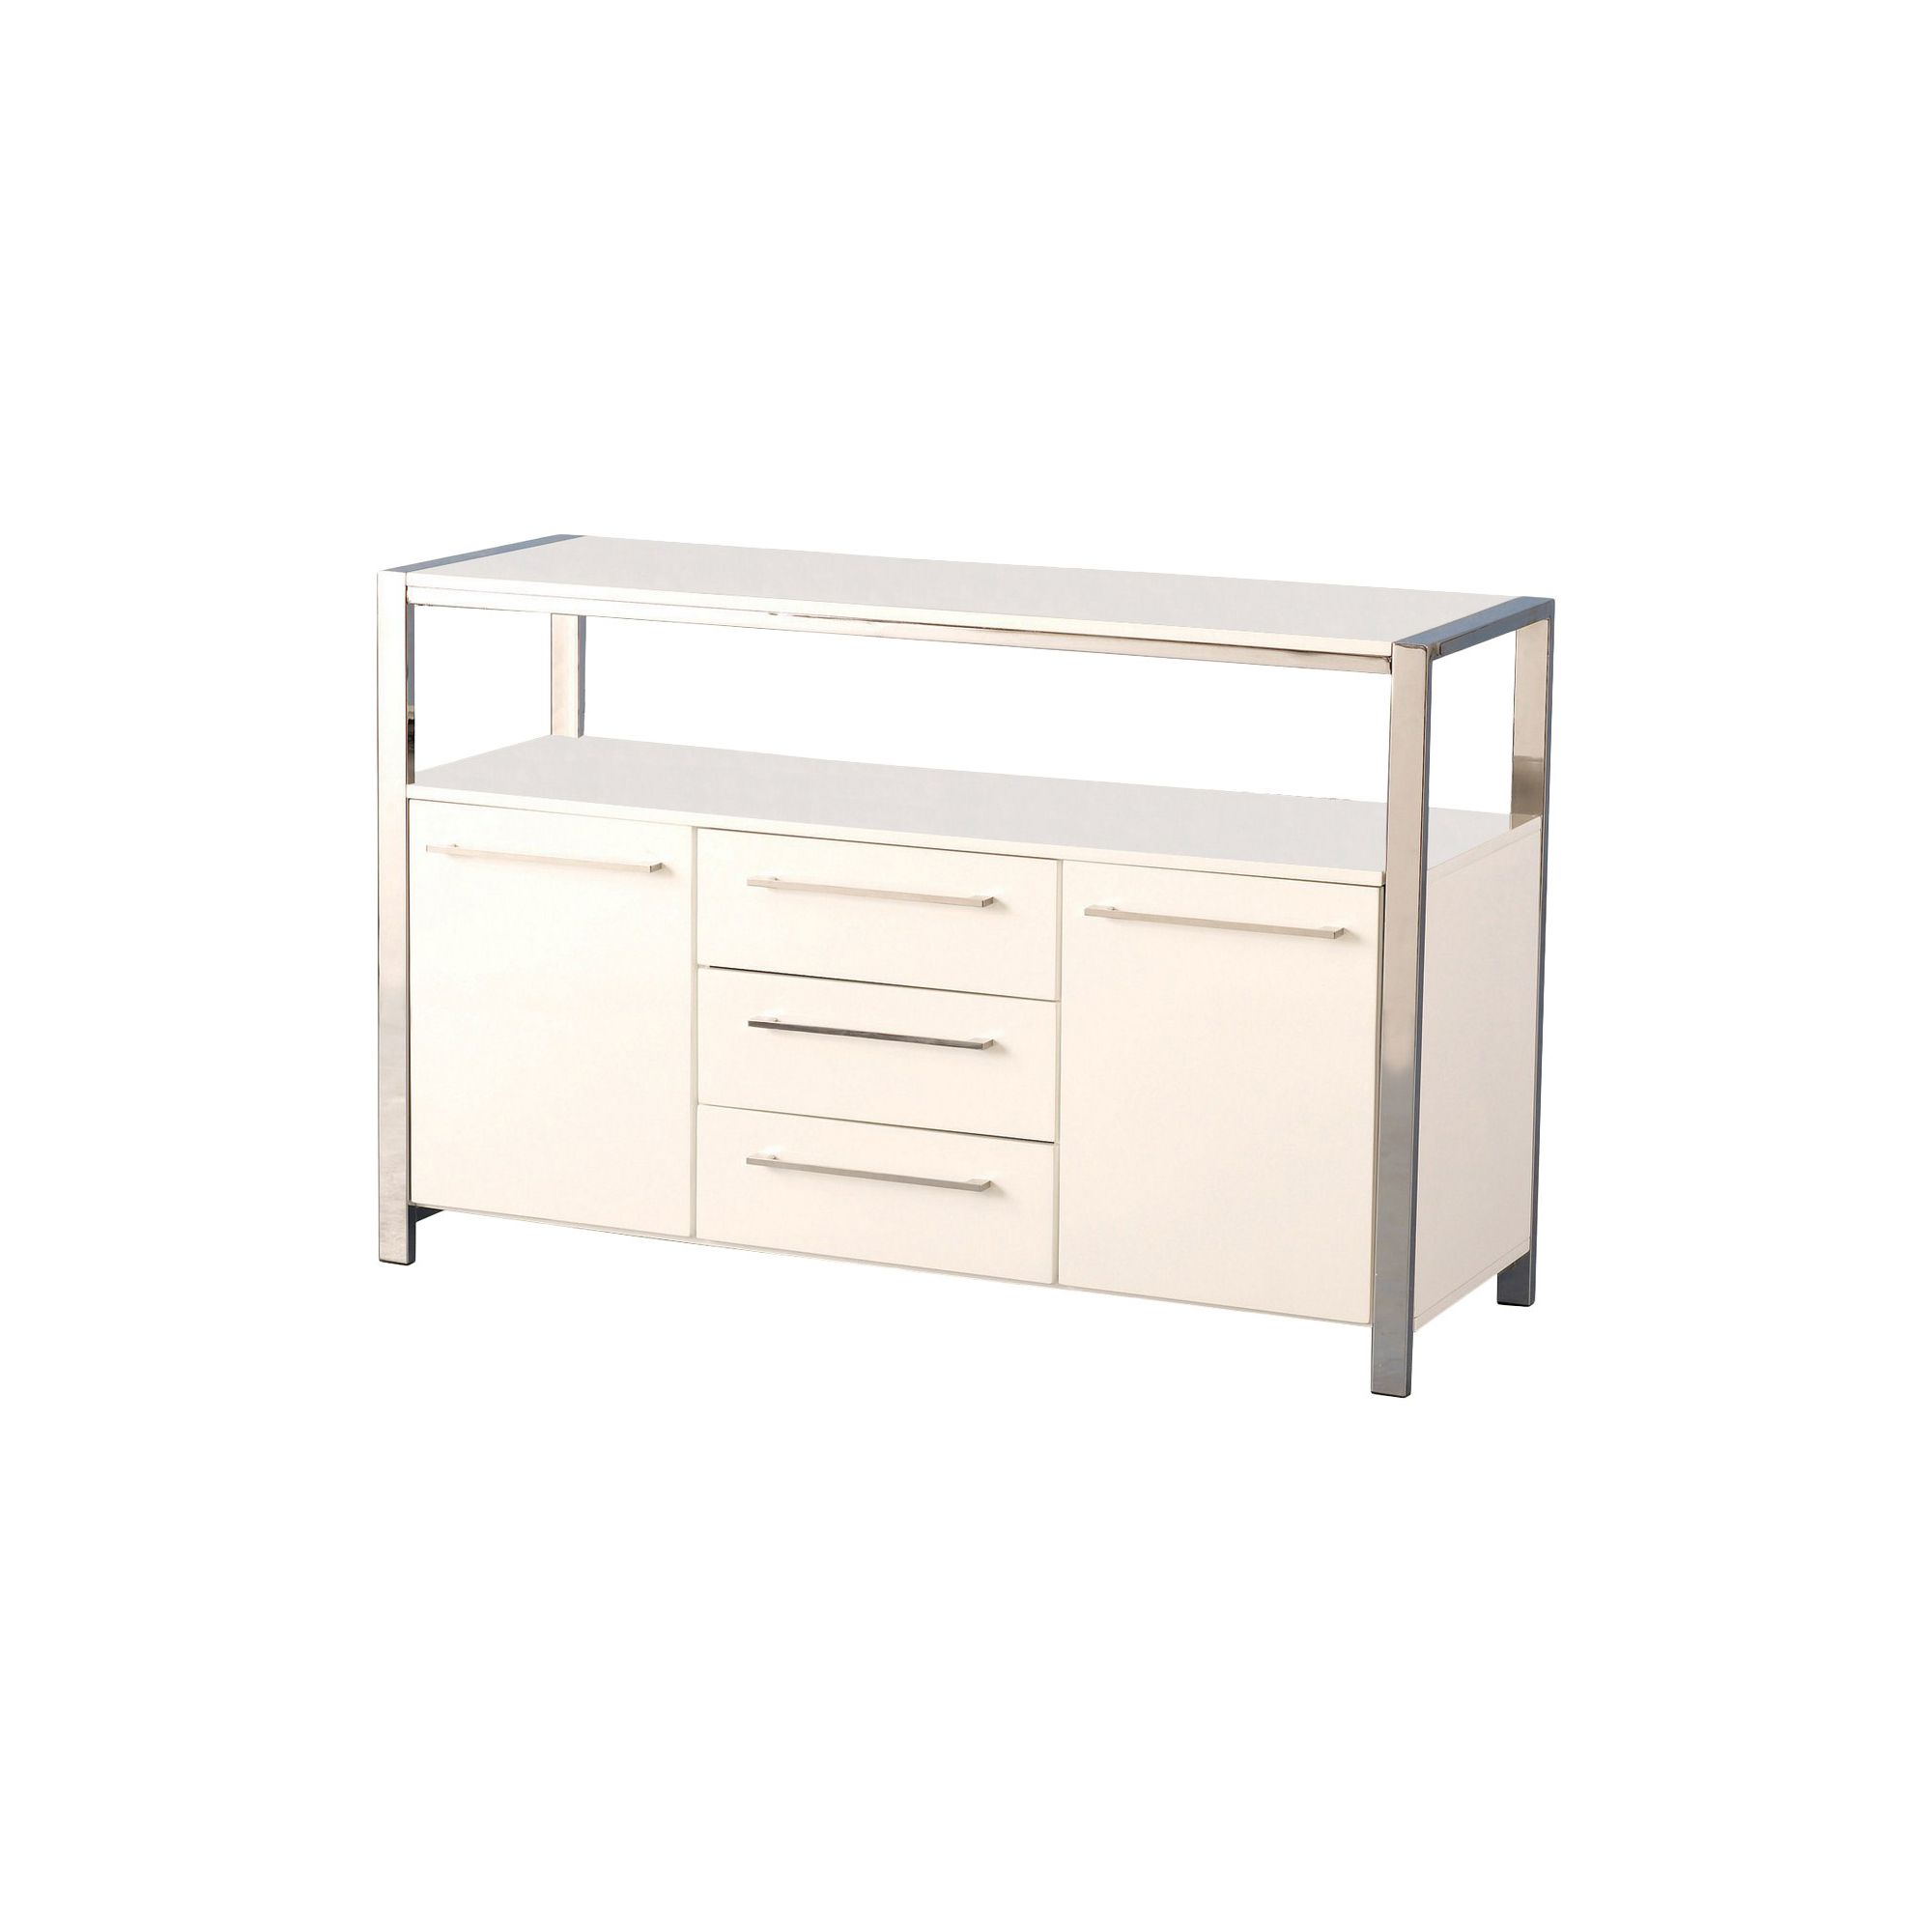 Home Essence BostonSideboard in White at Tesco Direct